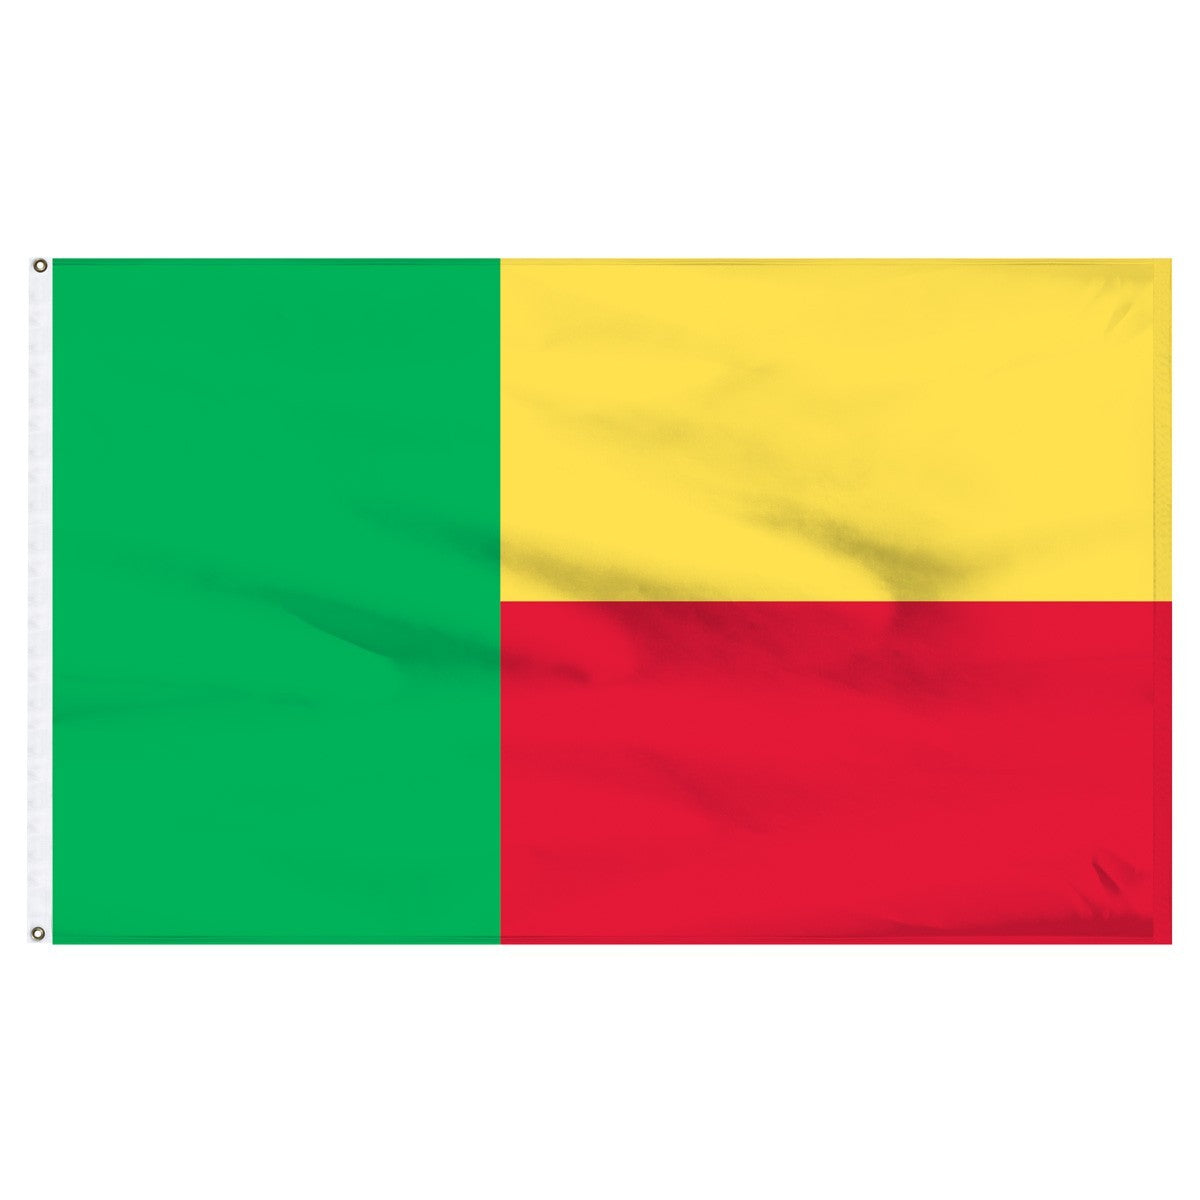 Benin 4' x 6' Outdoor Nylon Country Flag